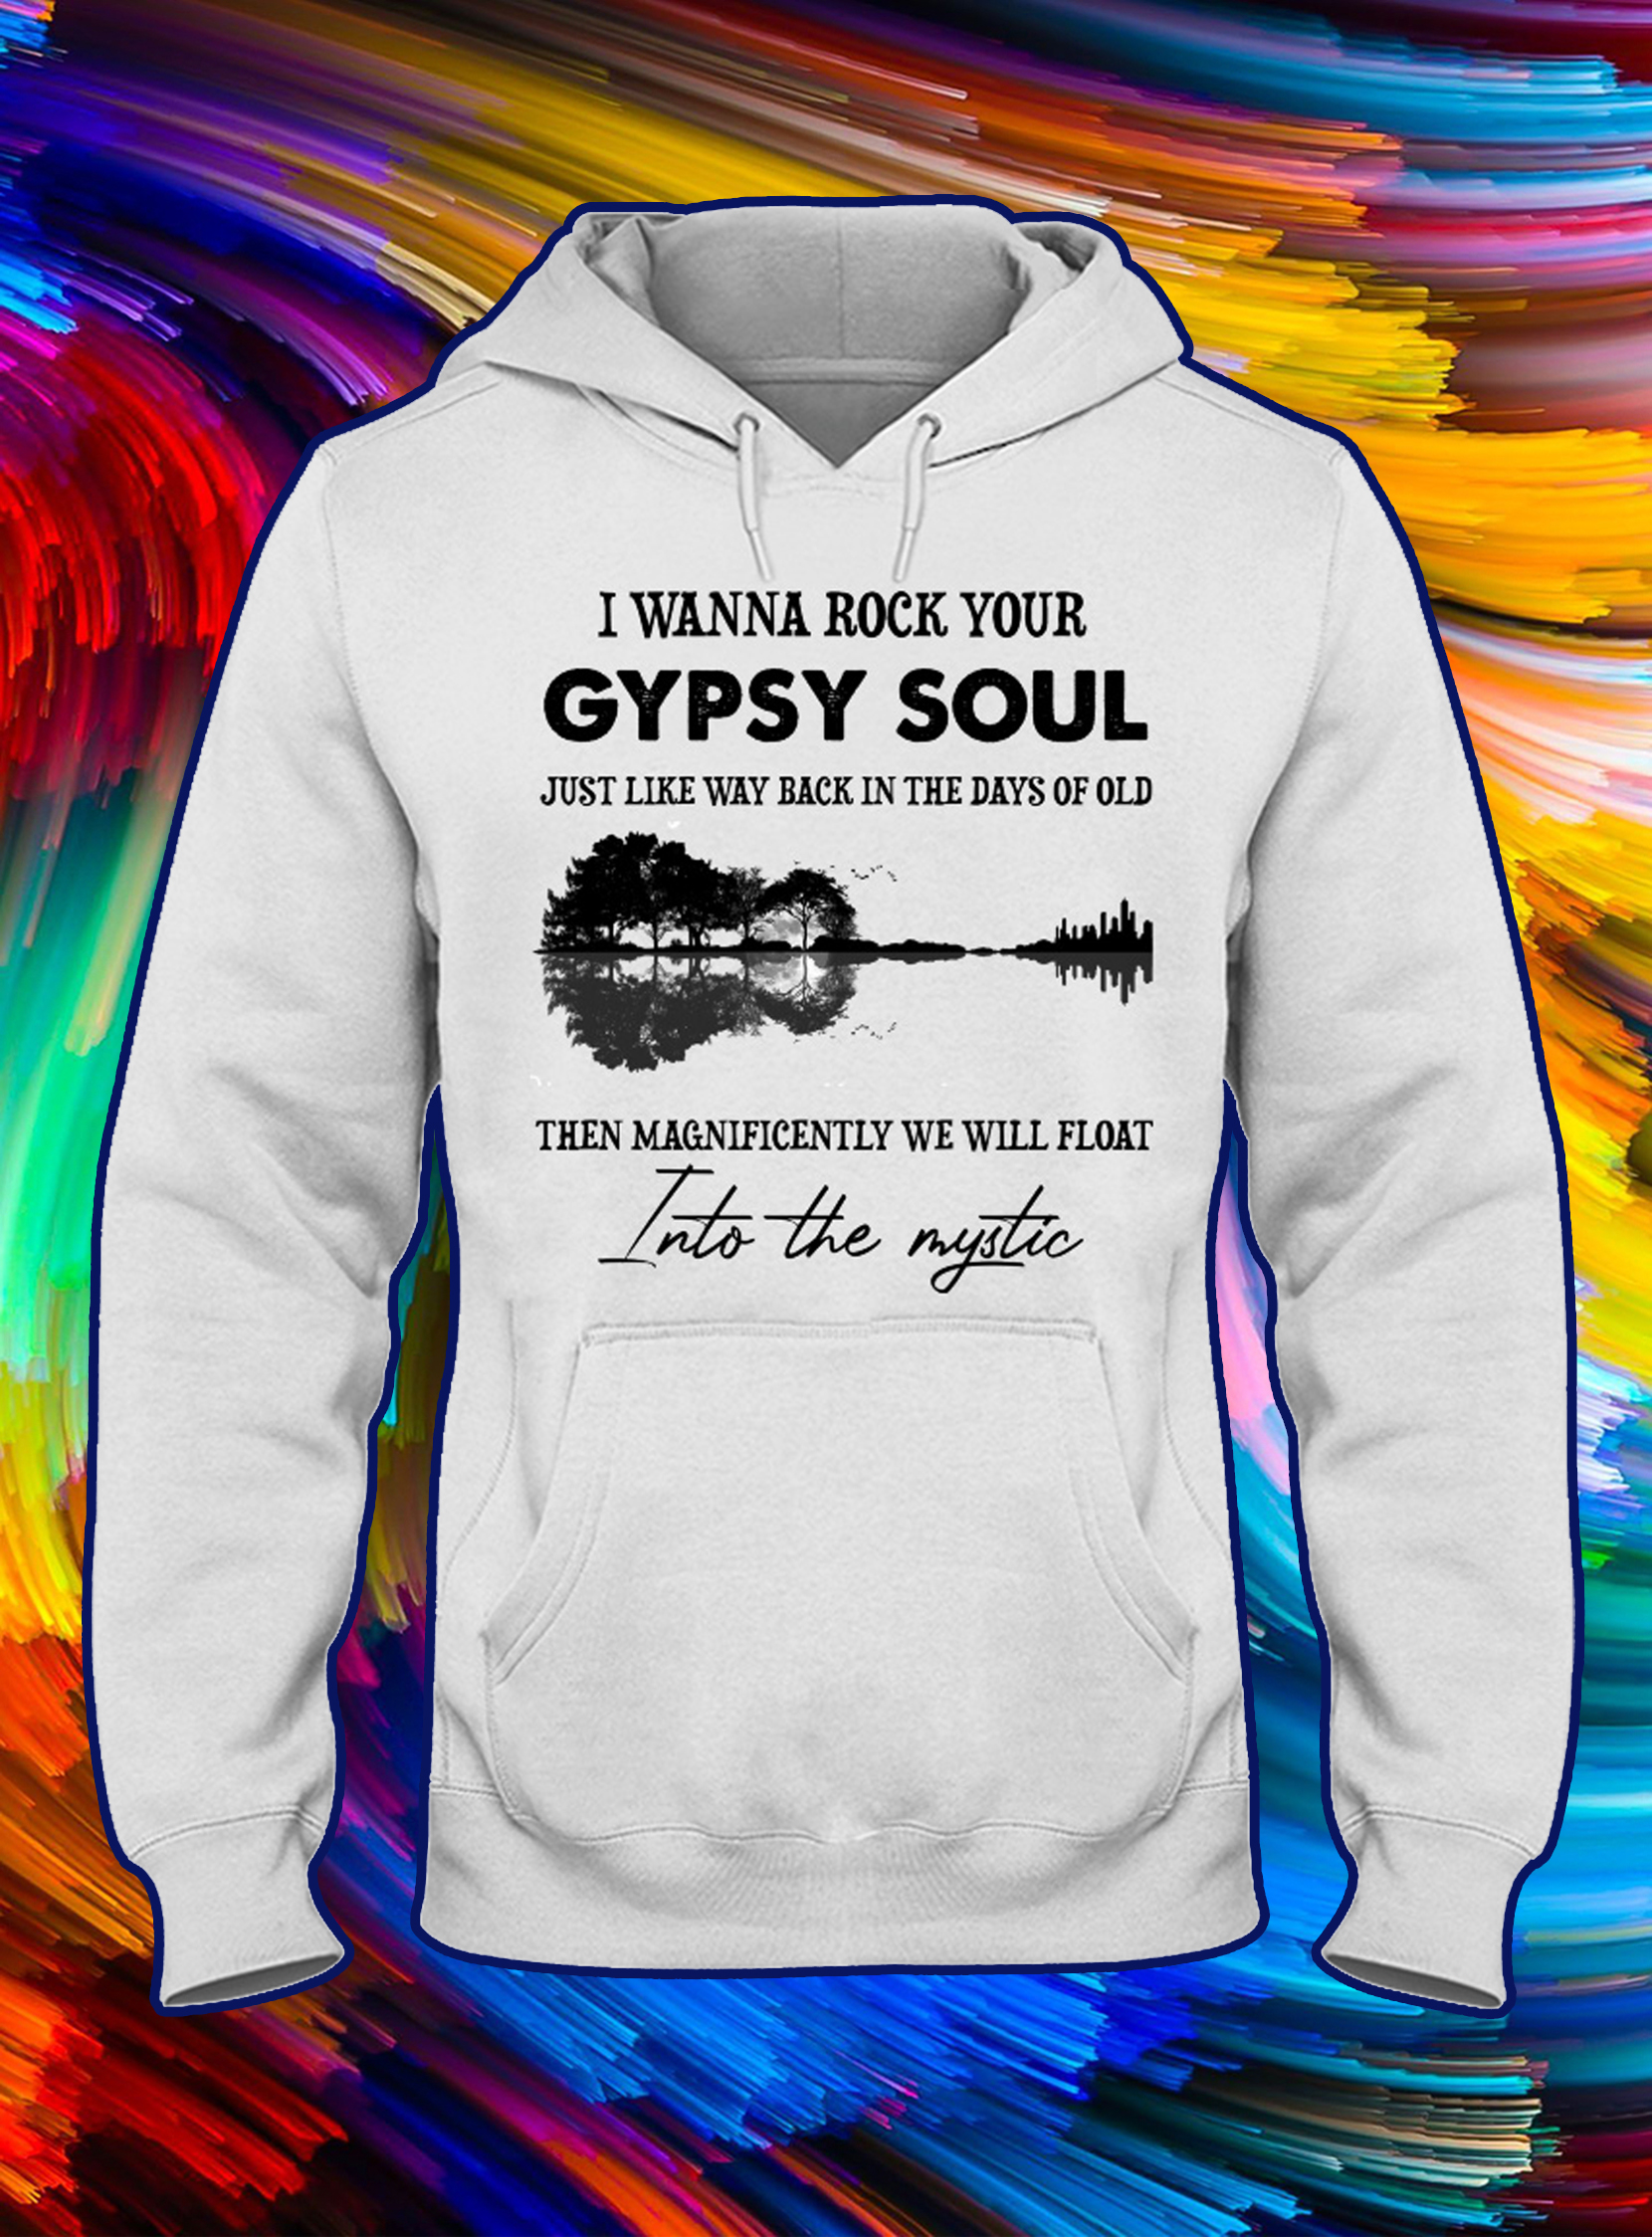 Guitar reflection I wanna rock your gypsy soul just like way back in the days of old hoodie